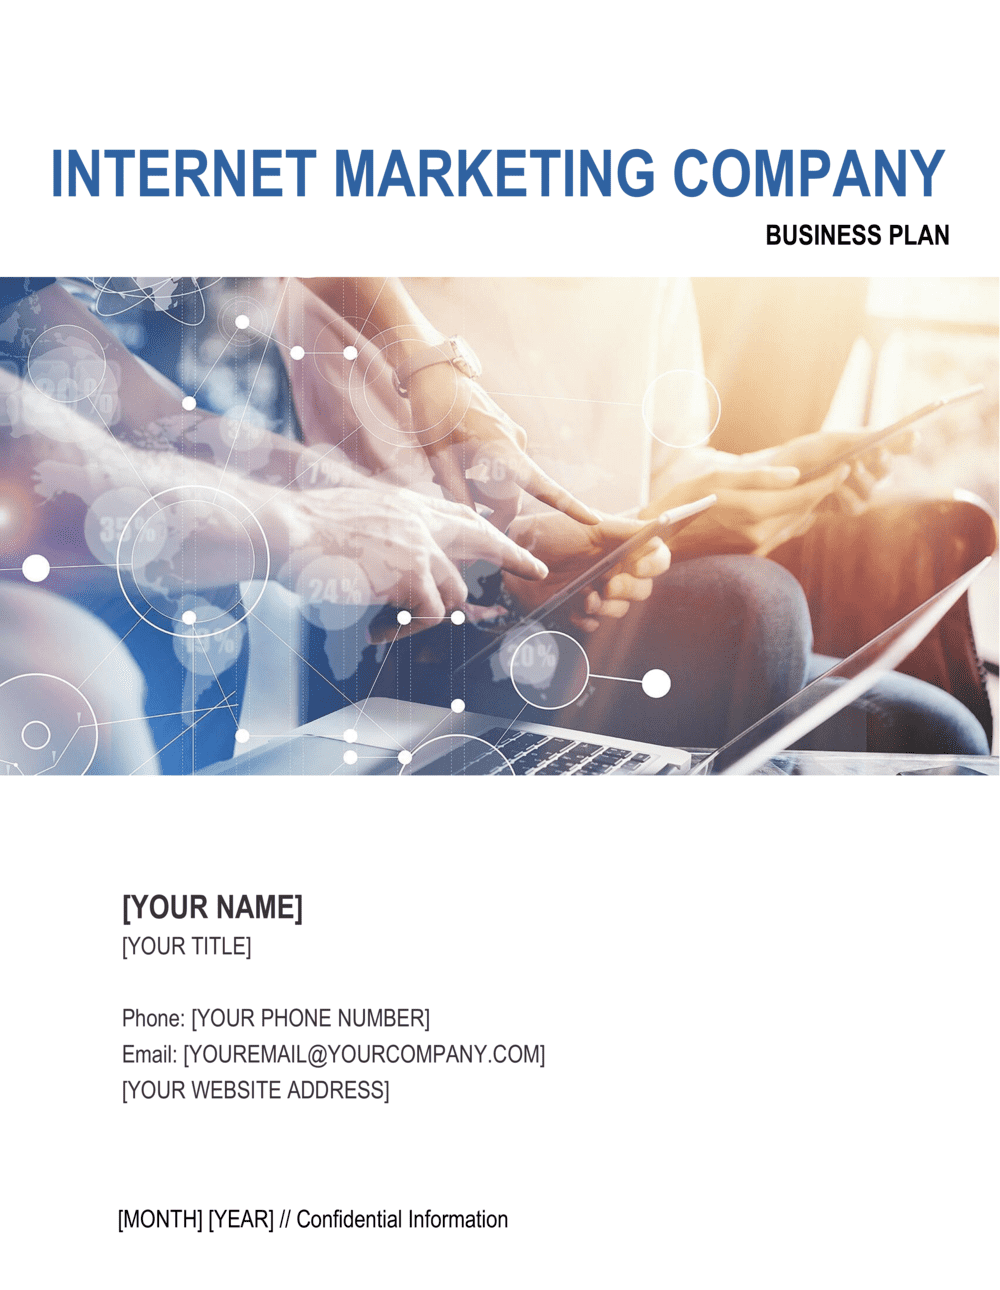 Business-in-a-Box's Internet Marketing Company Business Plan Template